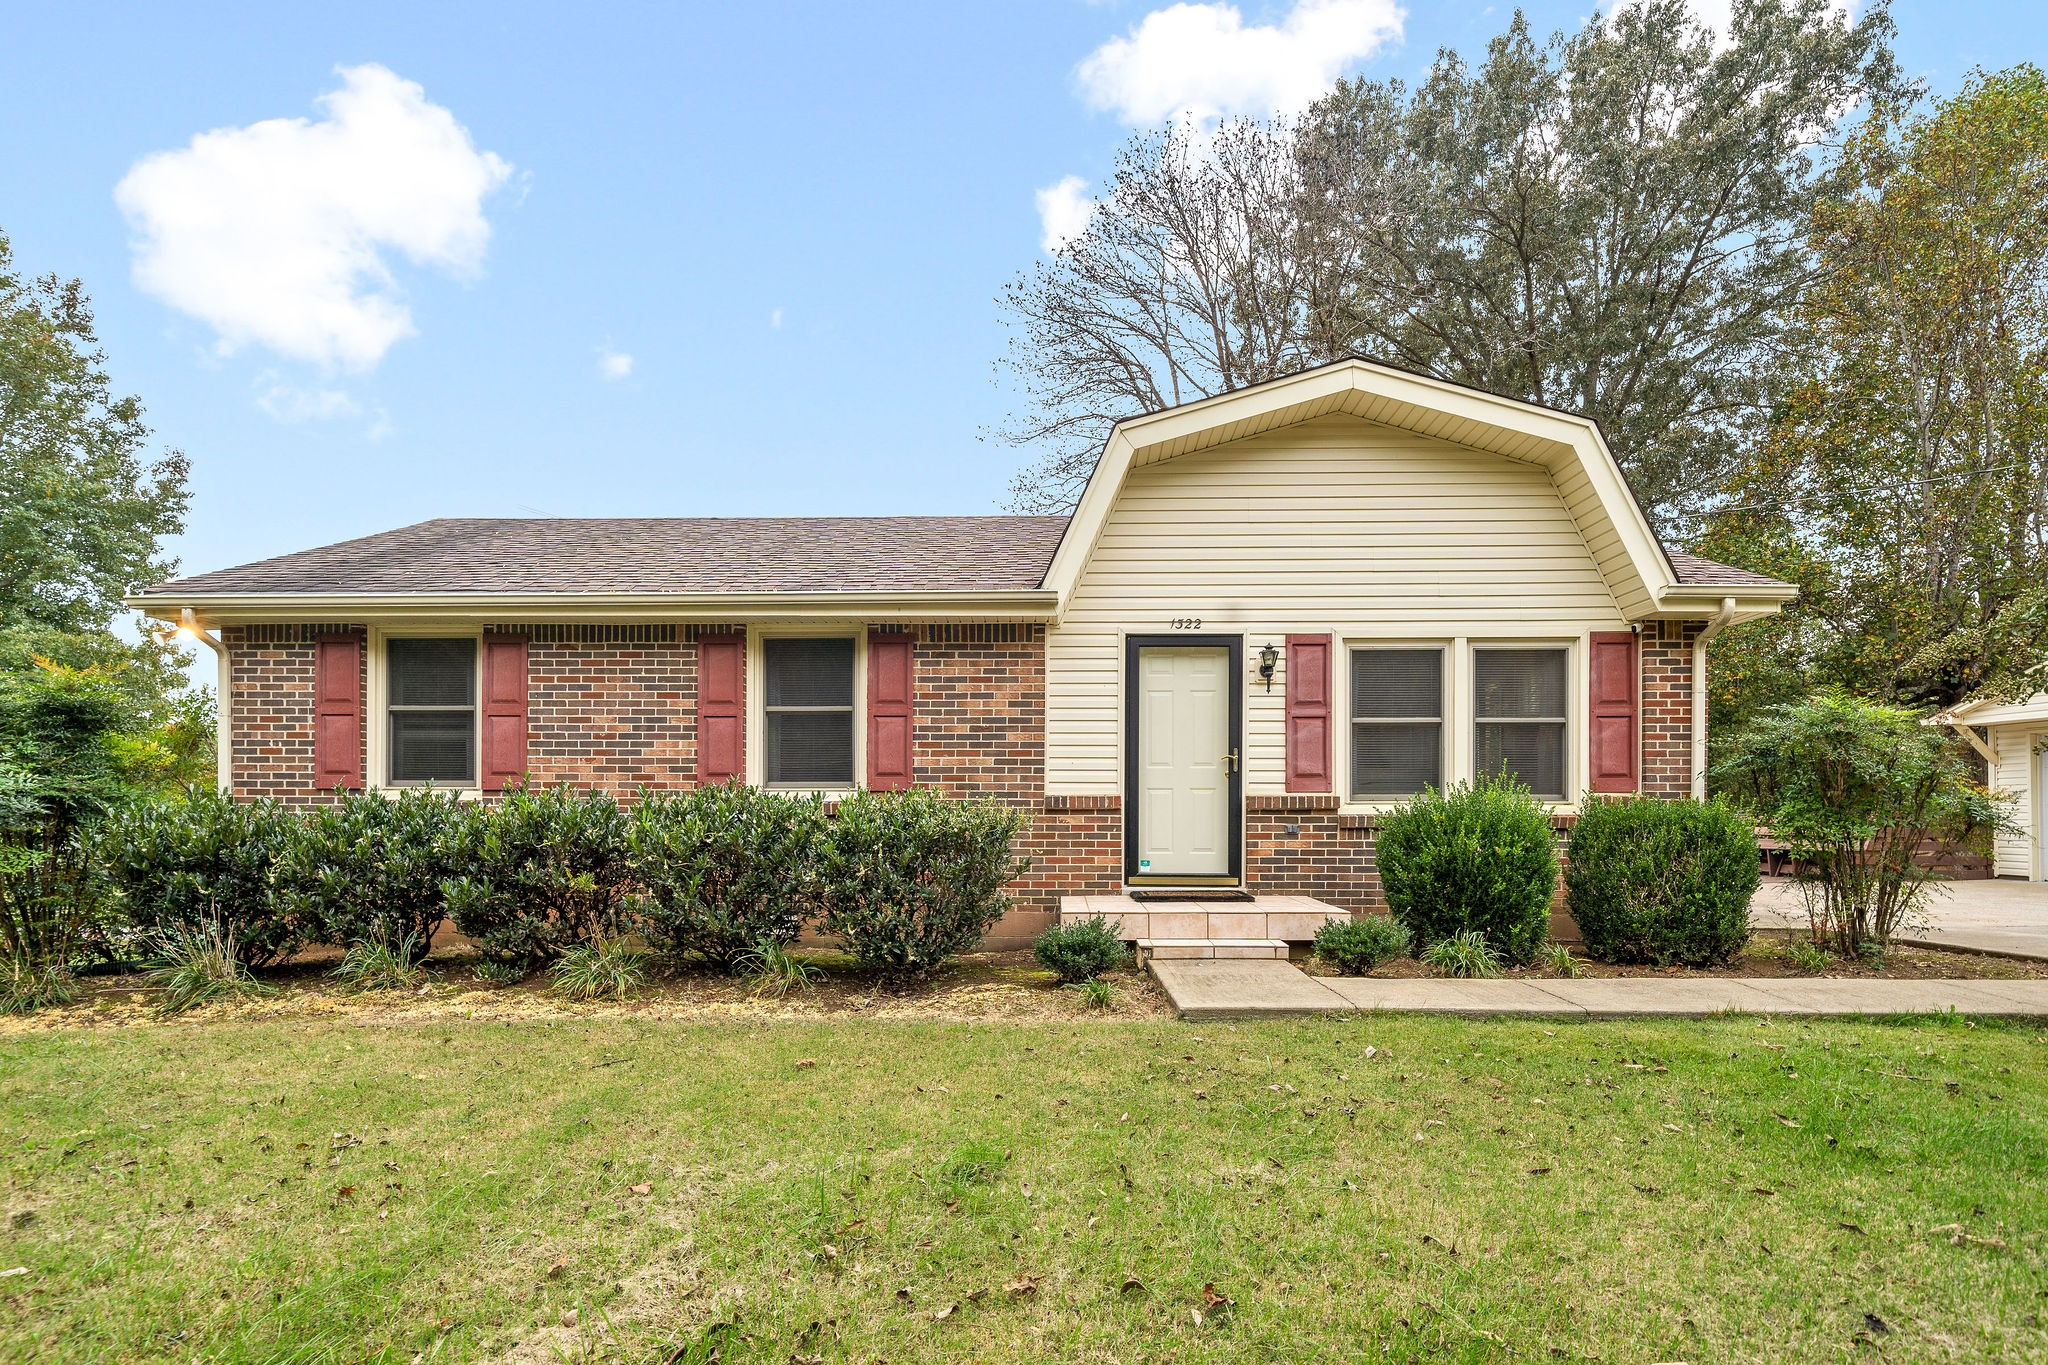 Welcome Home! 3 Bedrooms & 2 Bathrooms on .46 Acres - Fenced Yard with Huge Entertaining Deck - Large Detached Garage with Additional Parking- Master Bedroom with Attached Bathroom - New Roof in 2014 - Central Desirable Location in 37043 - Come See Today!